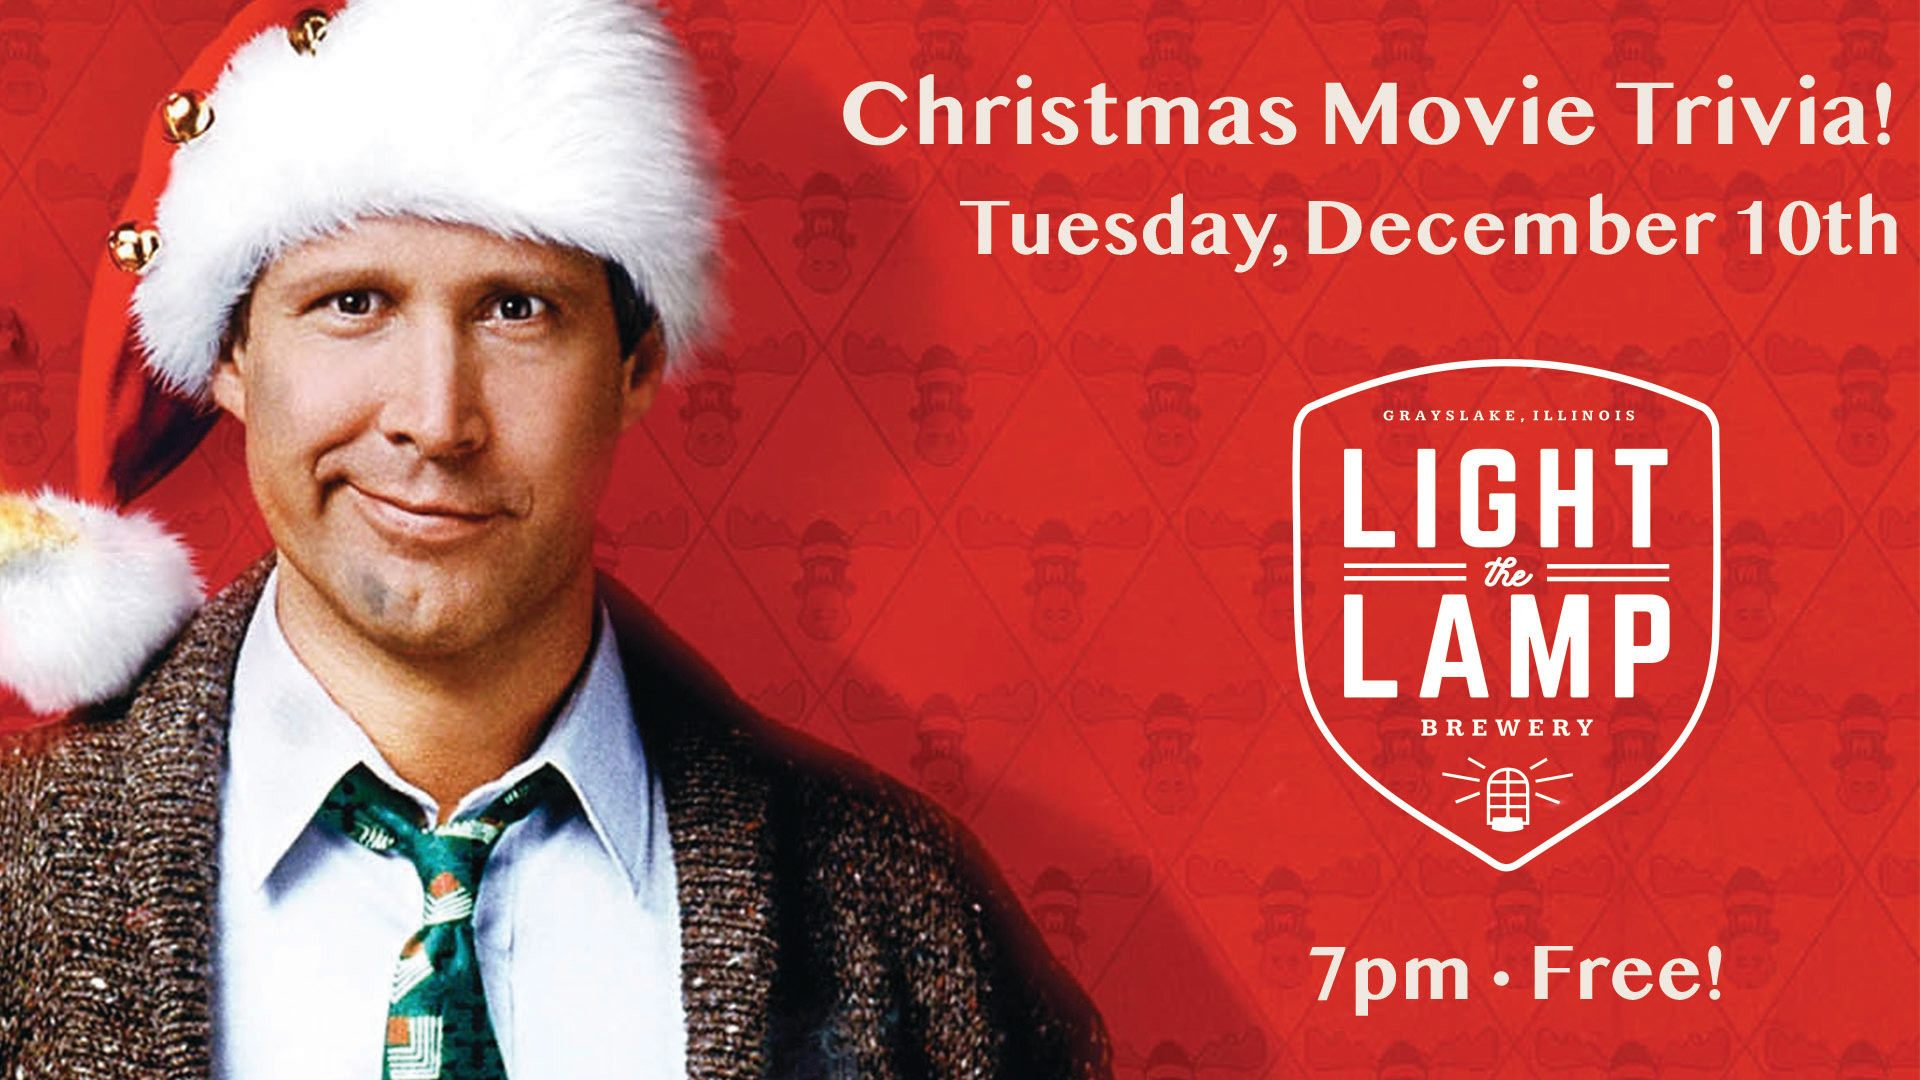 Christmas Movie Trivia at Light the Lamp Brewery